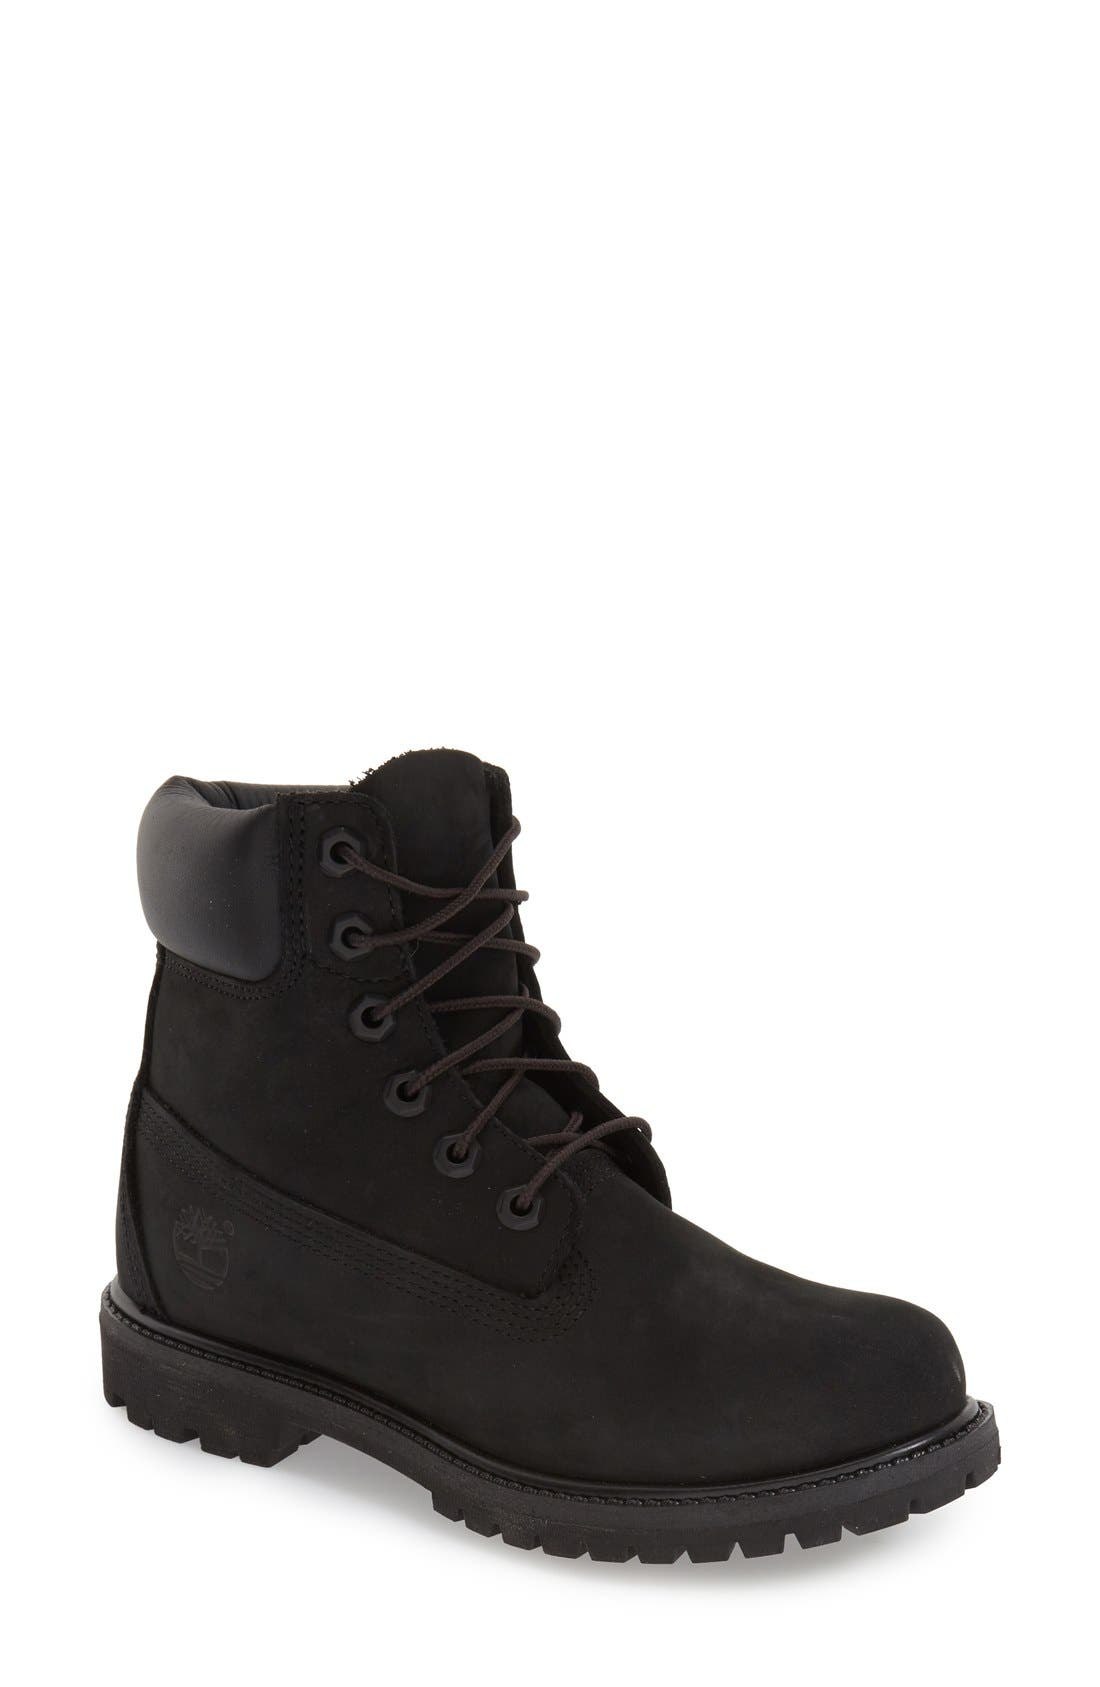 TIMBERLAND, 6 Inch Premium Waterproof Boot, Main thumbnail 1, color, BLACK NUBUCK LEATHER